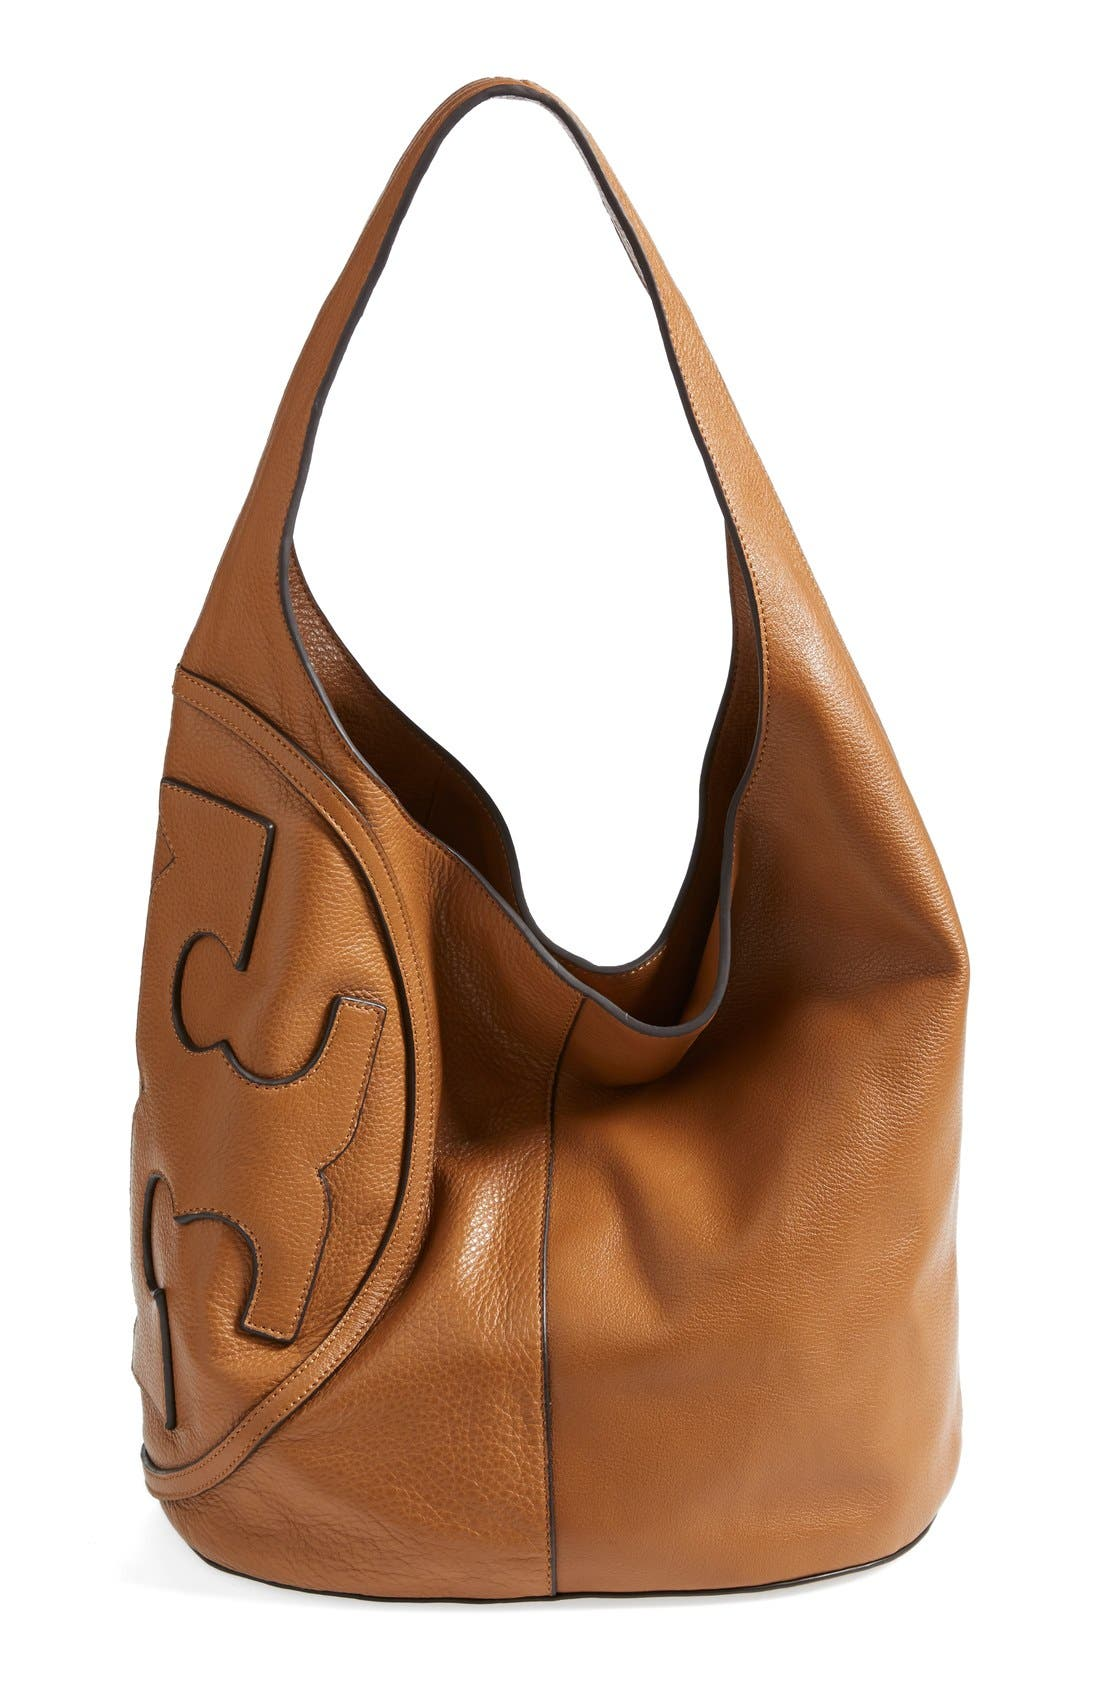 Alternate Image 1 Selected - Tory Burch 'All T' Logo Leather Hobo